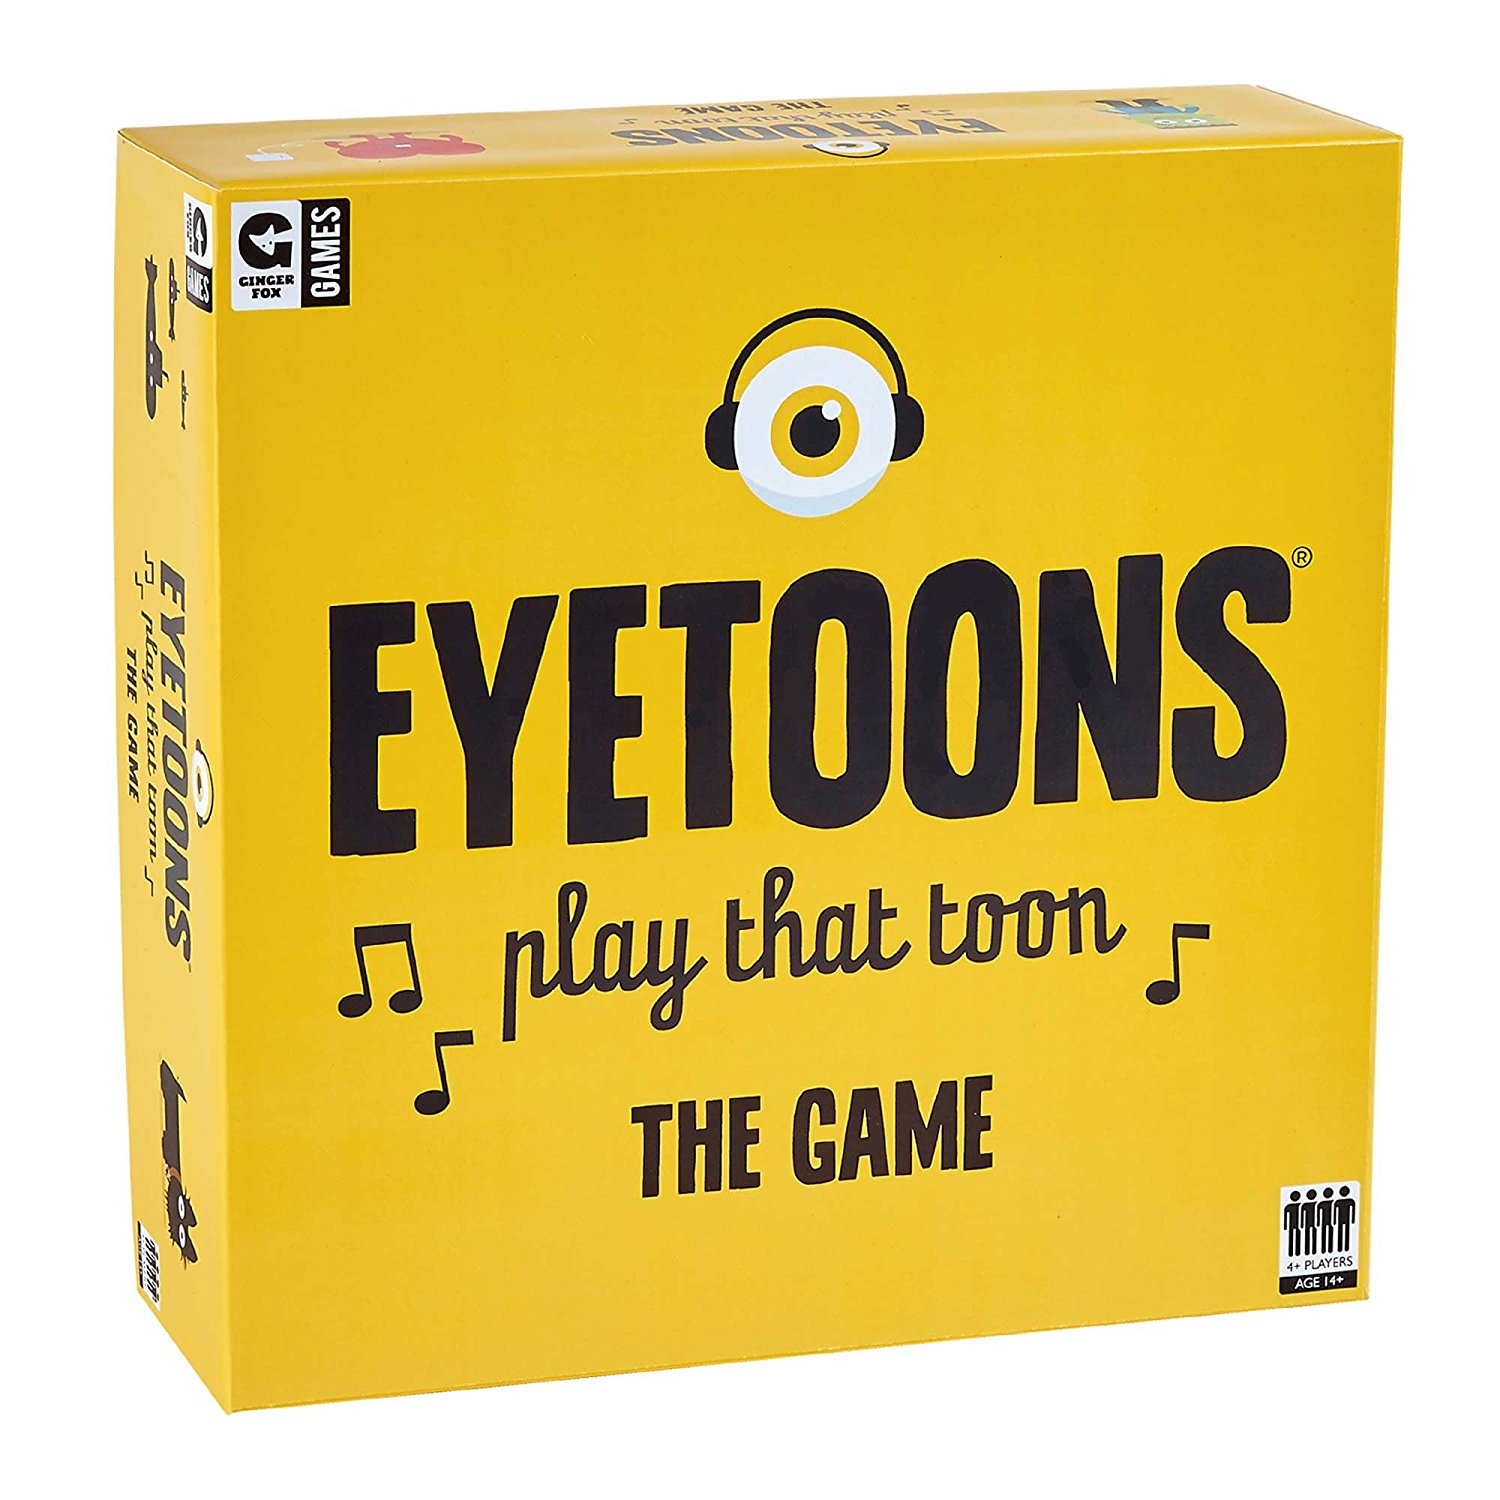 Eyetoons the Boardgame